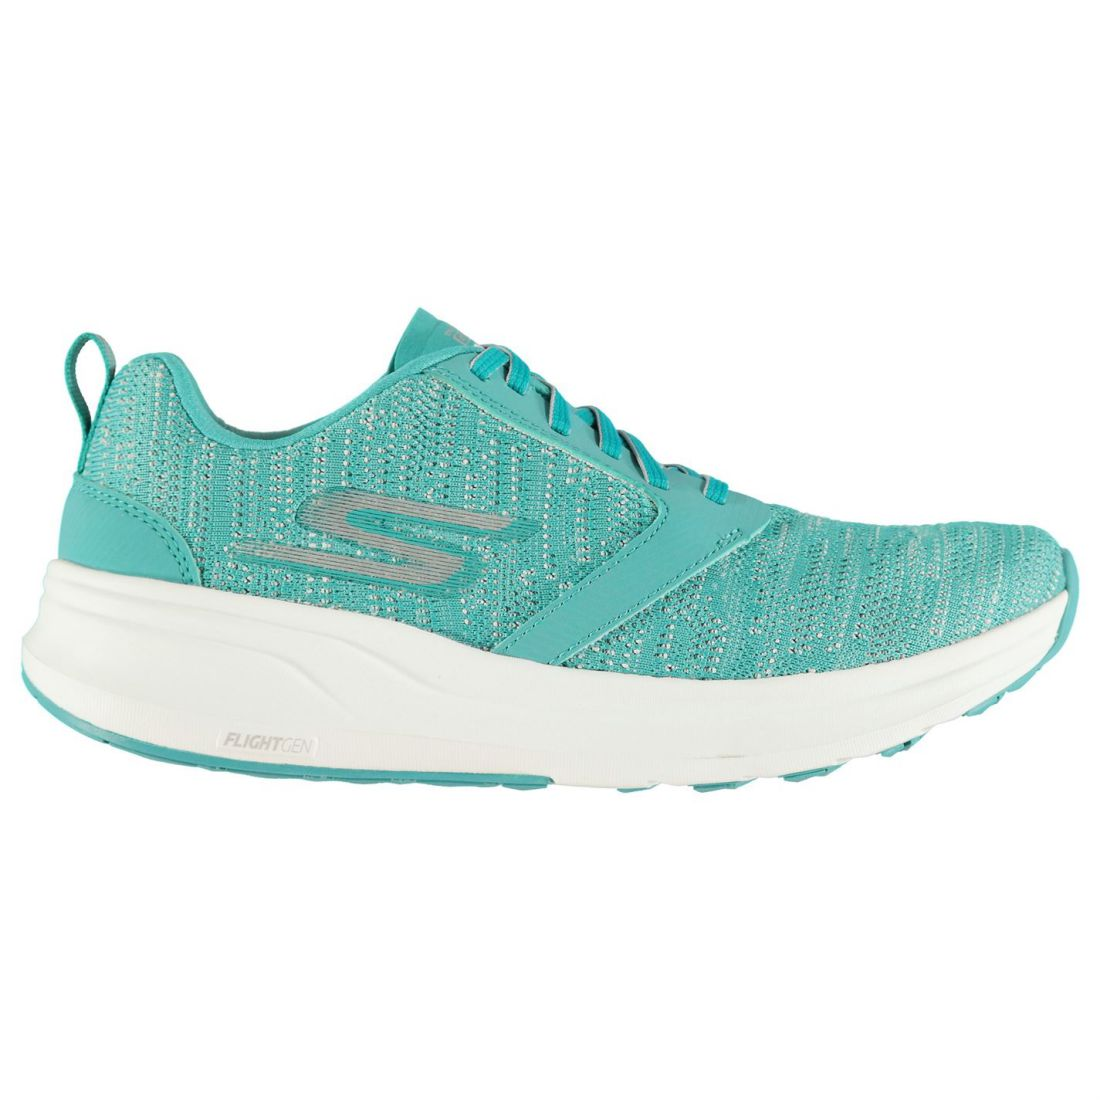 timeless design 6f2d4 cb9ff Details about Skechers Womens Donna GOrun Ride 7 Running Shoes Road Lace Up  Breathable